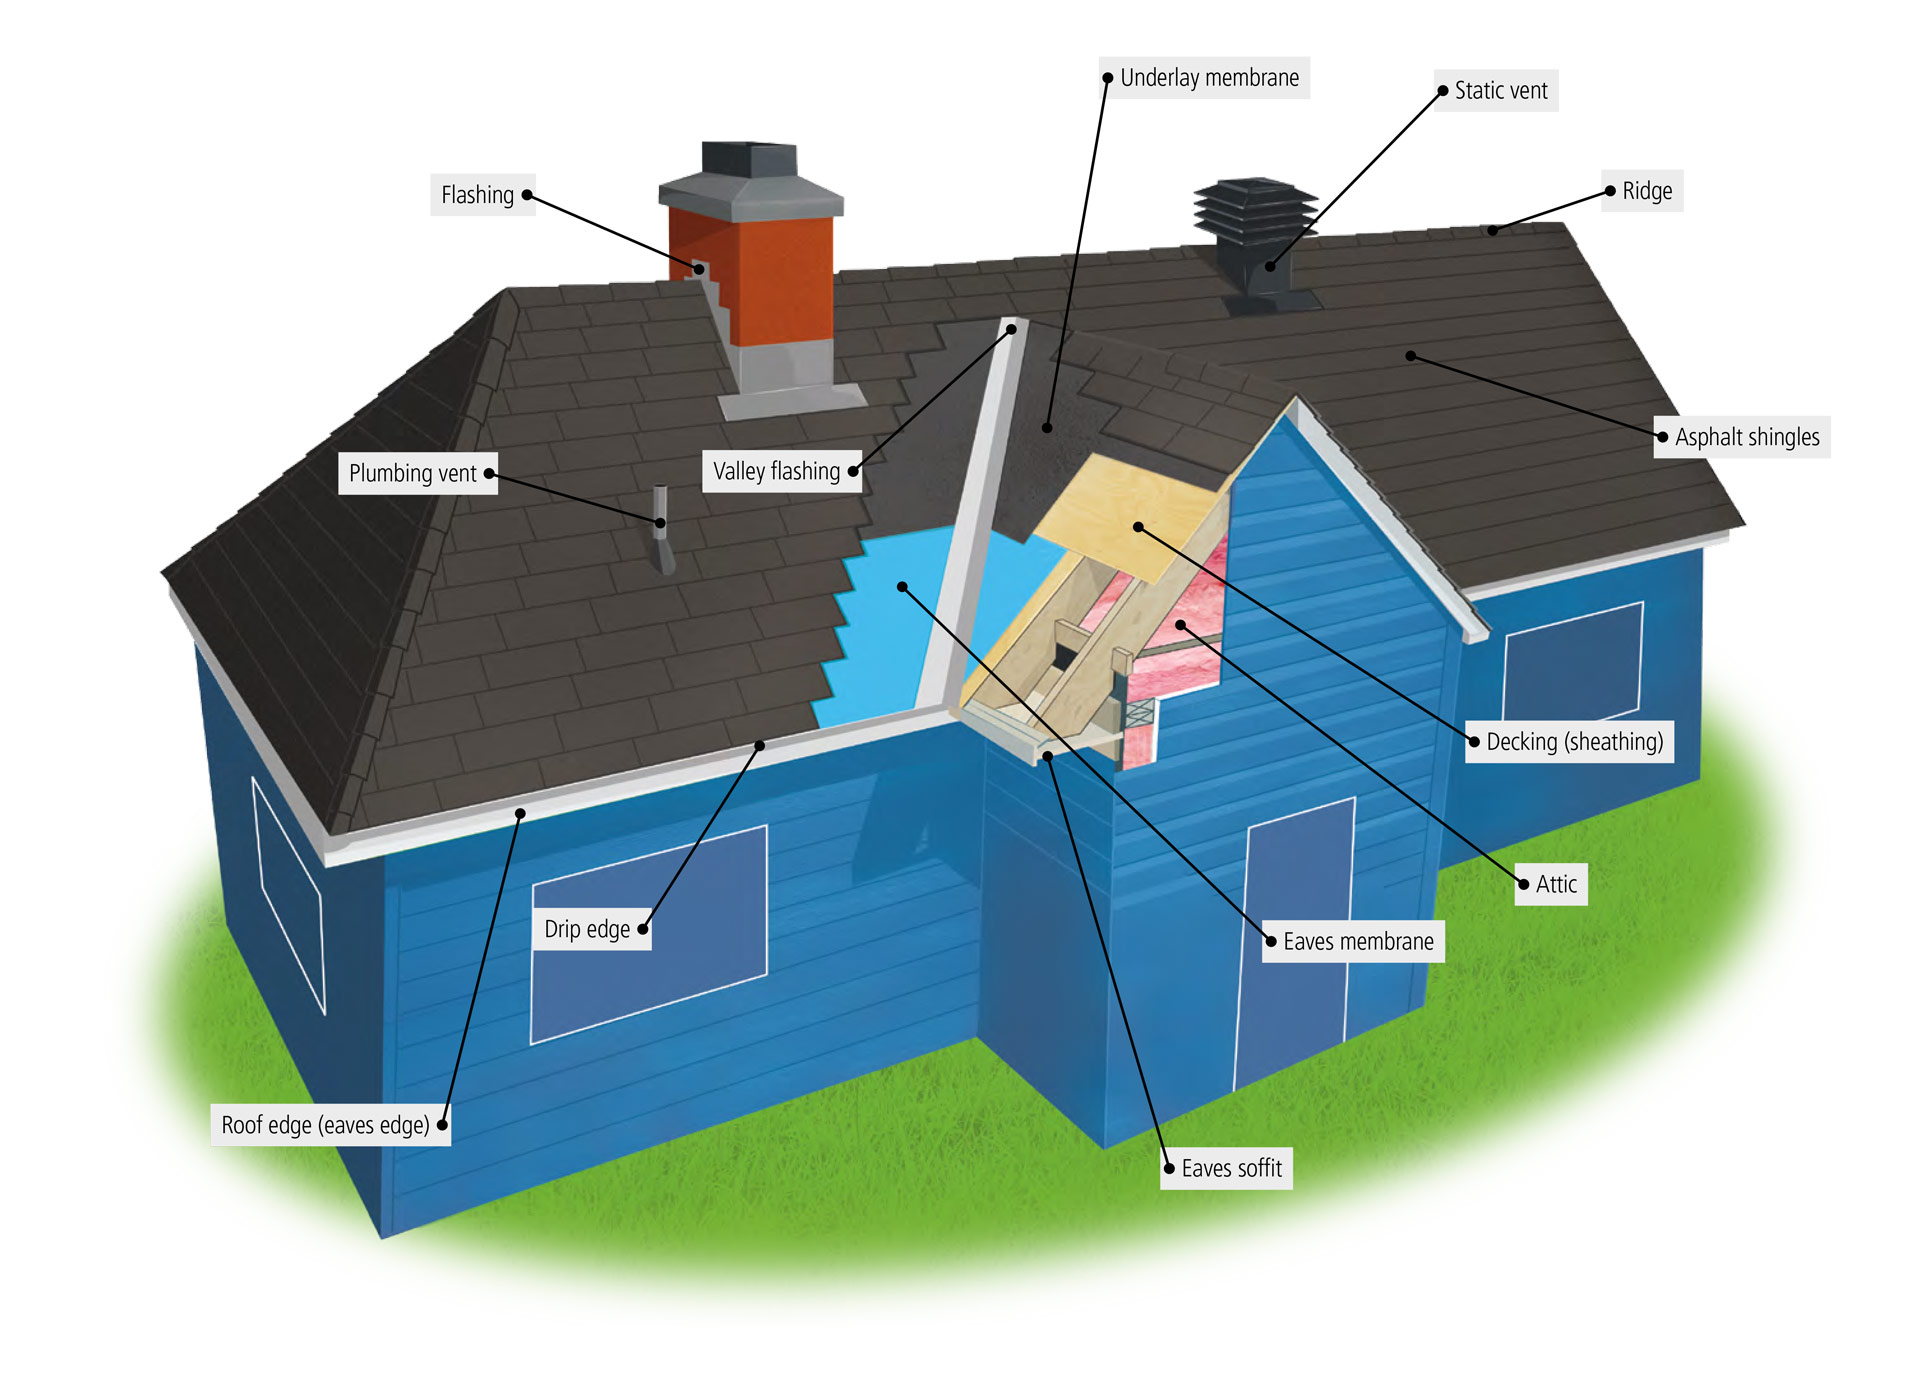 roofing terms diagram poulan chainsaw carburetor fuel line identifying the parts of roof and understanding their